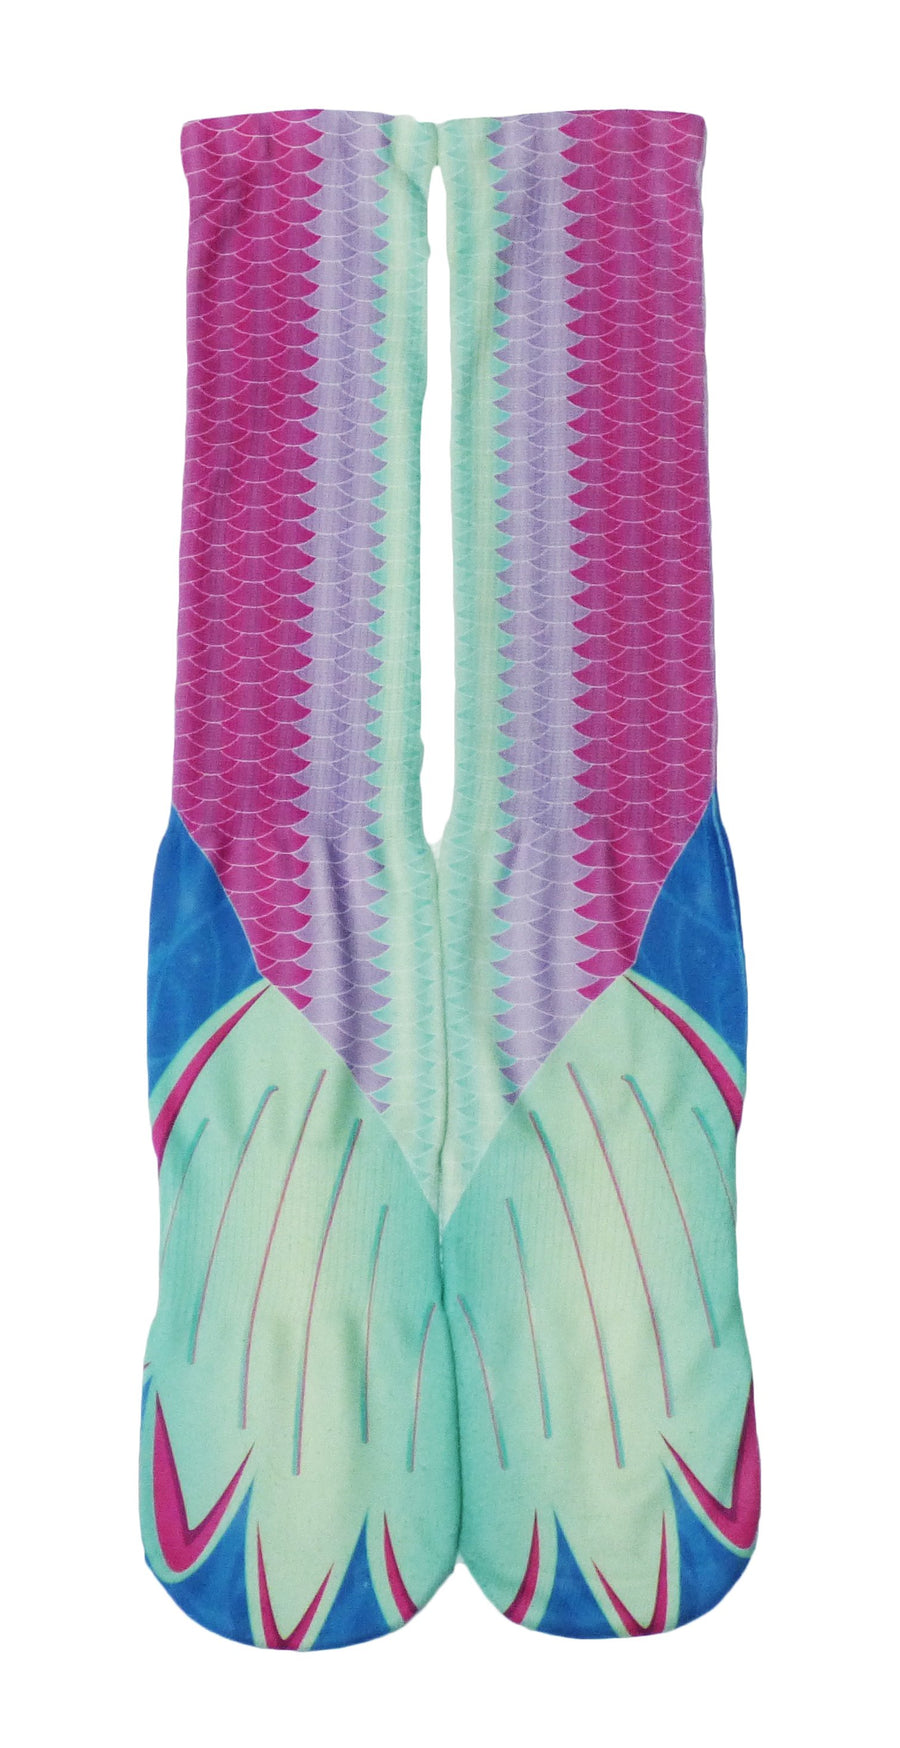 Mermaid Tail Unisex Knee High Socks